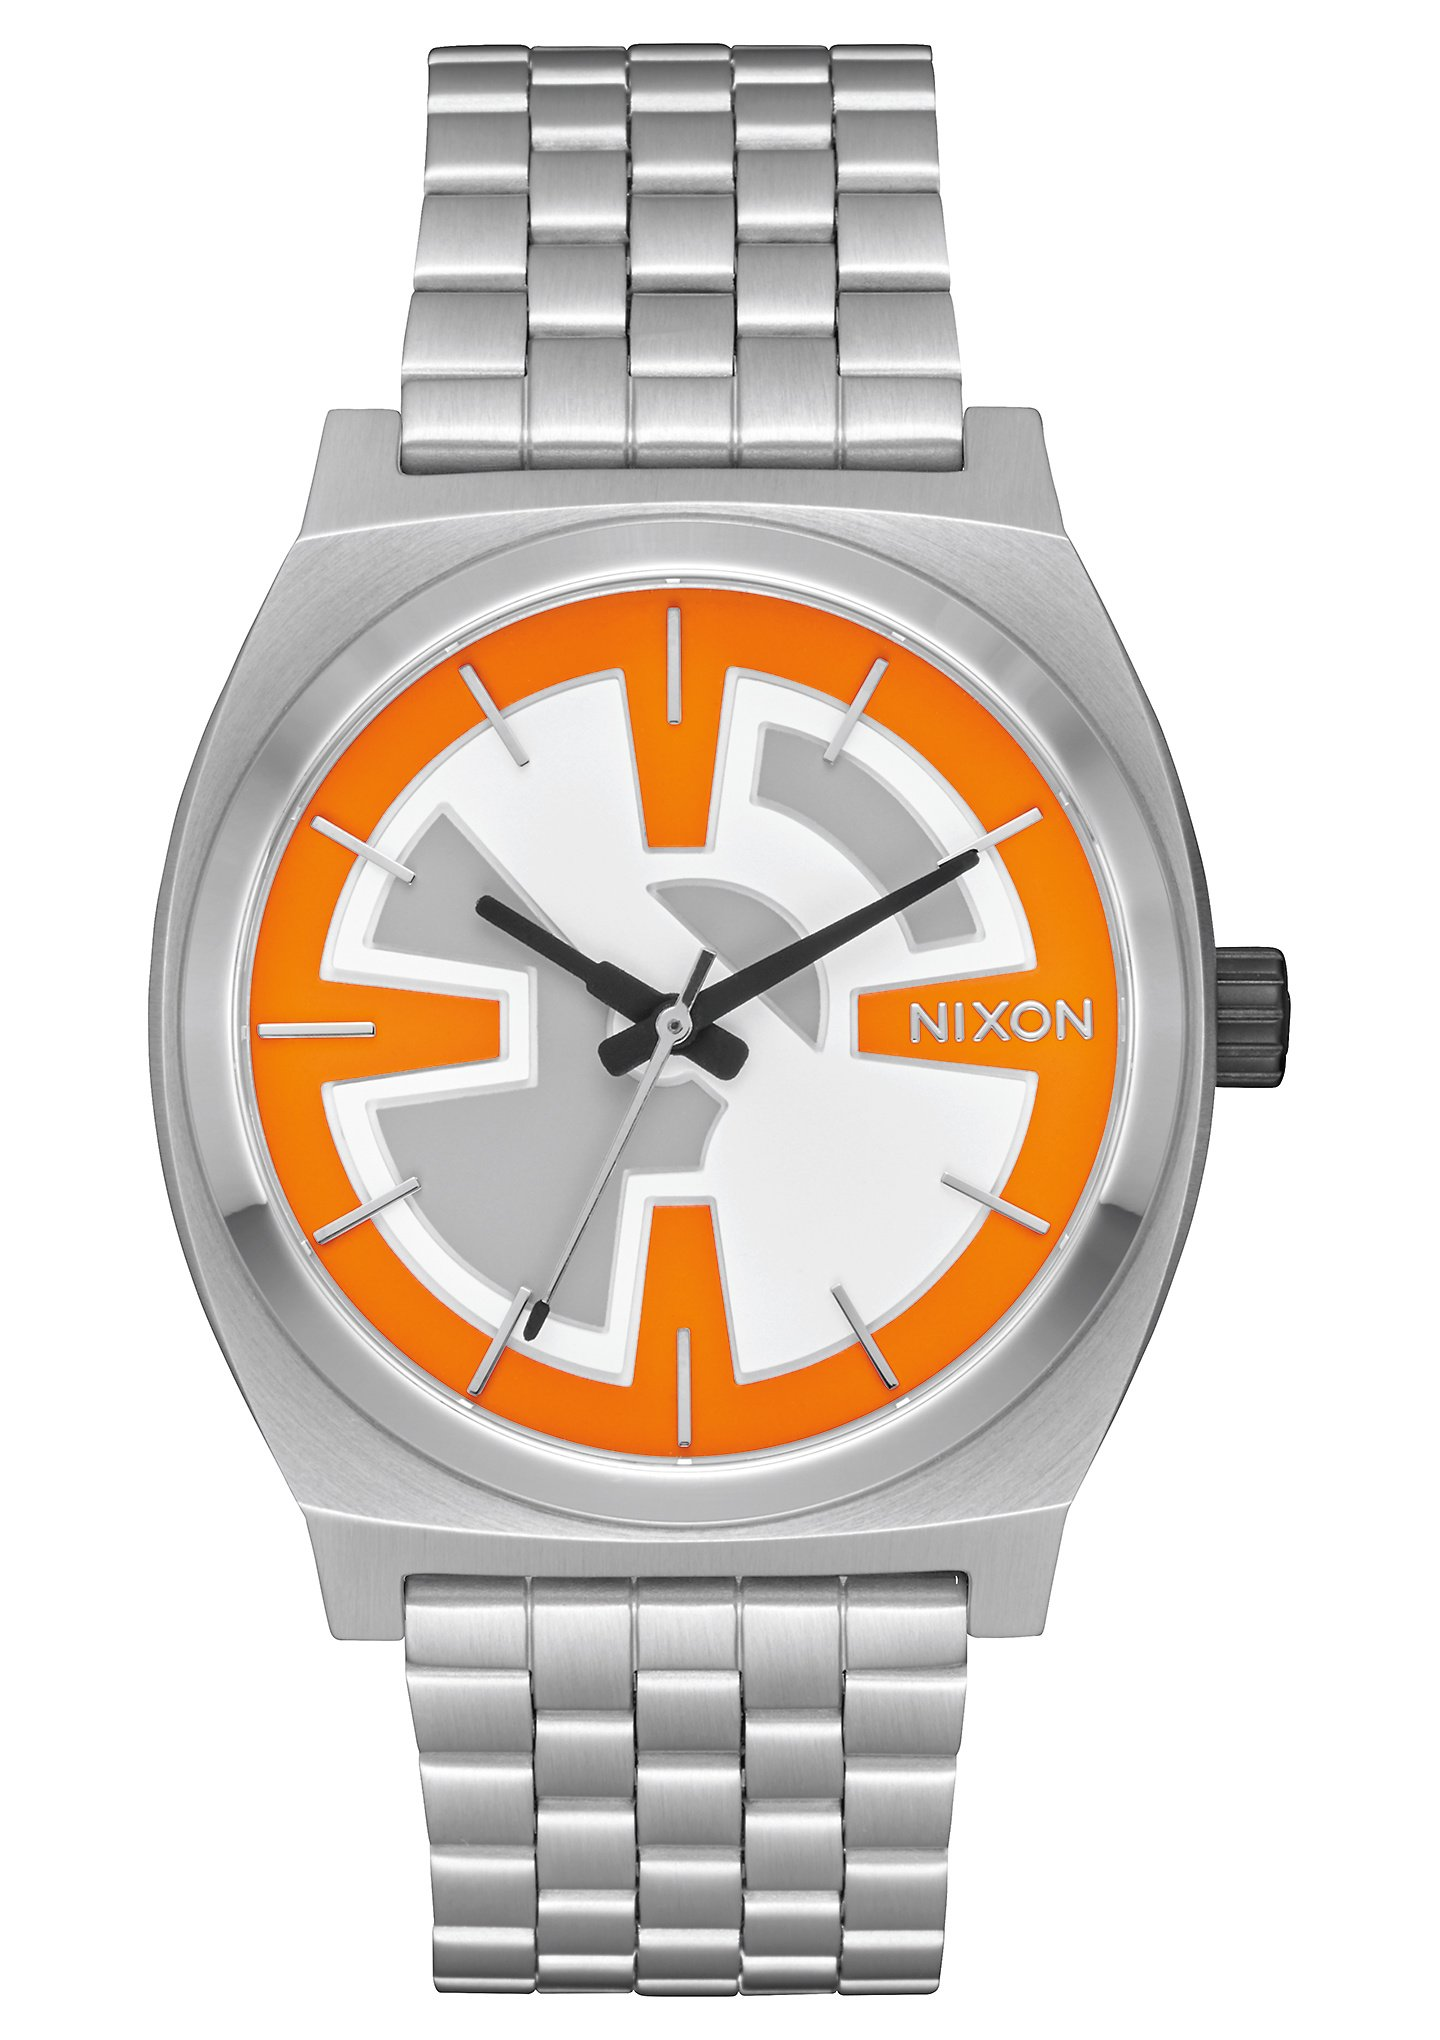 Nixon Unisex Time Teller - Star Wars Collection Bb-8 Orange/Black Watch by NIXON